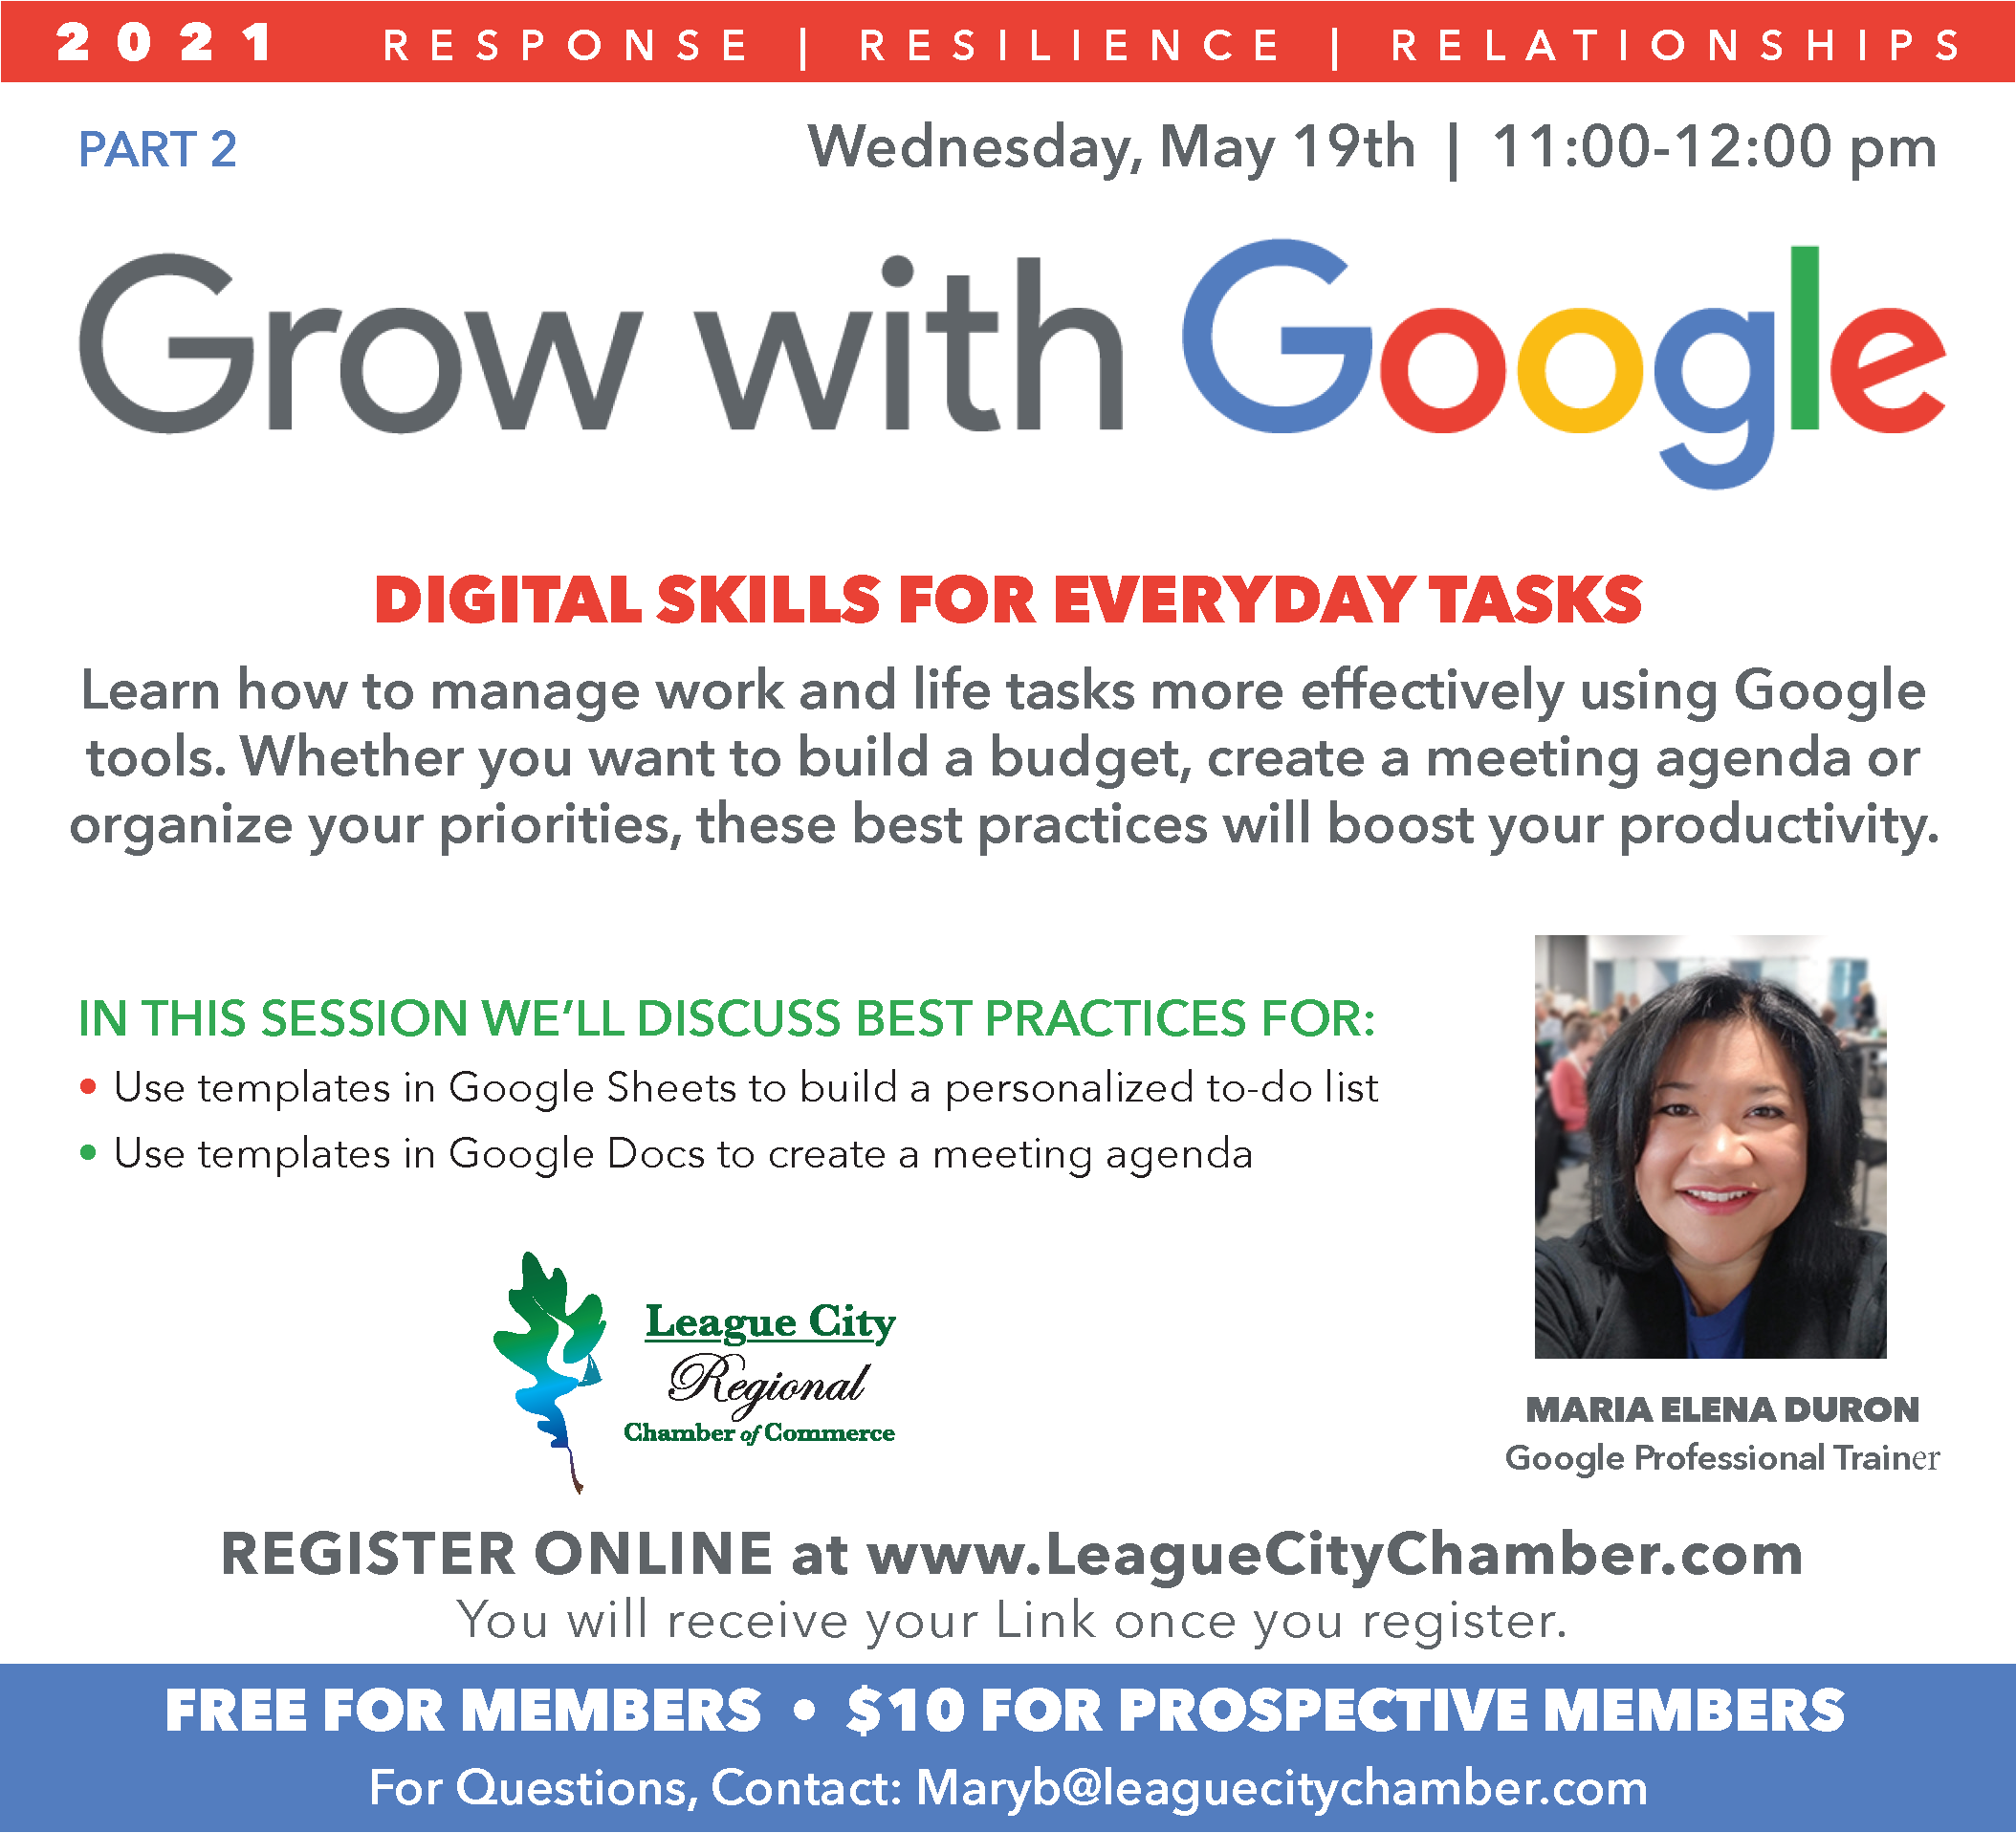 Image for PRESS RELEASE: Increase your digital skills today!